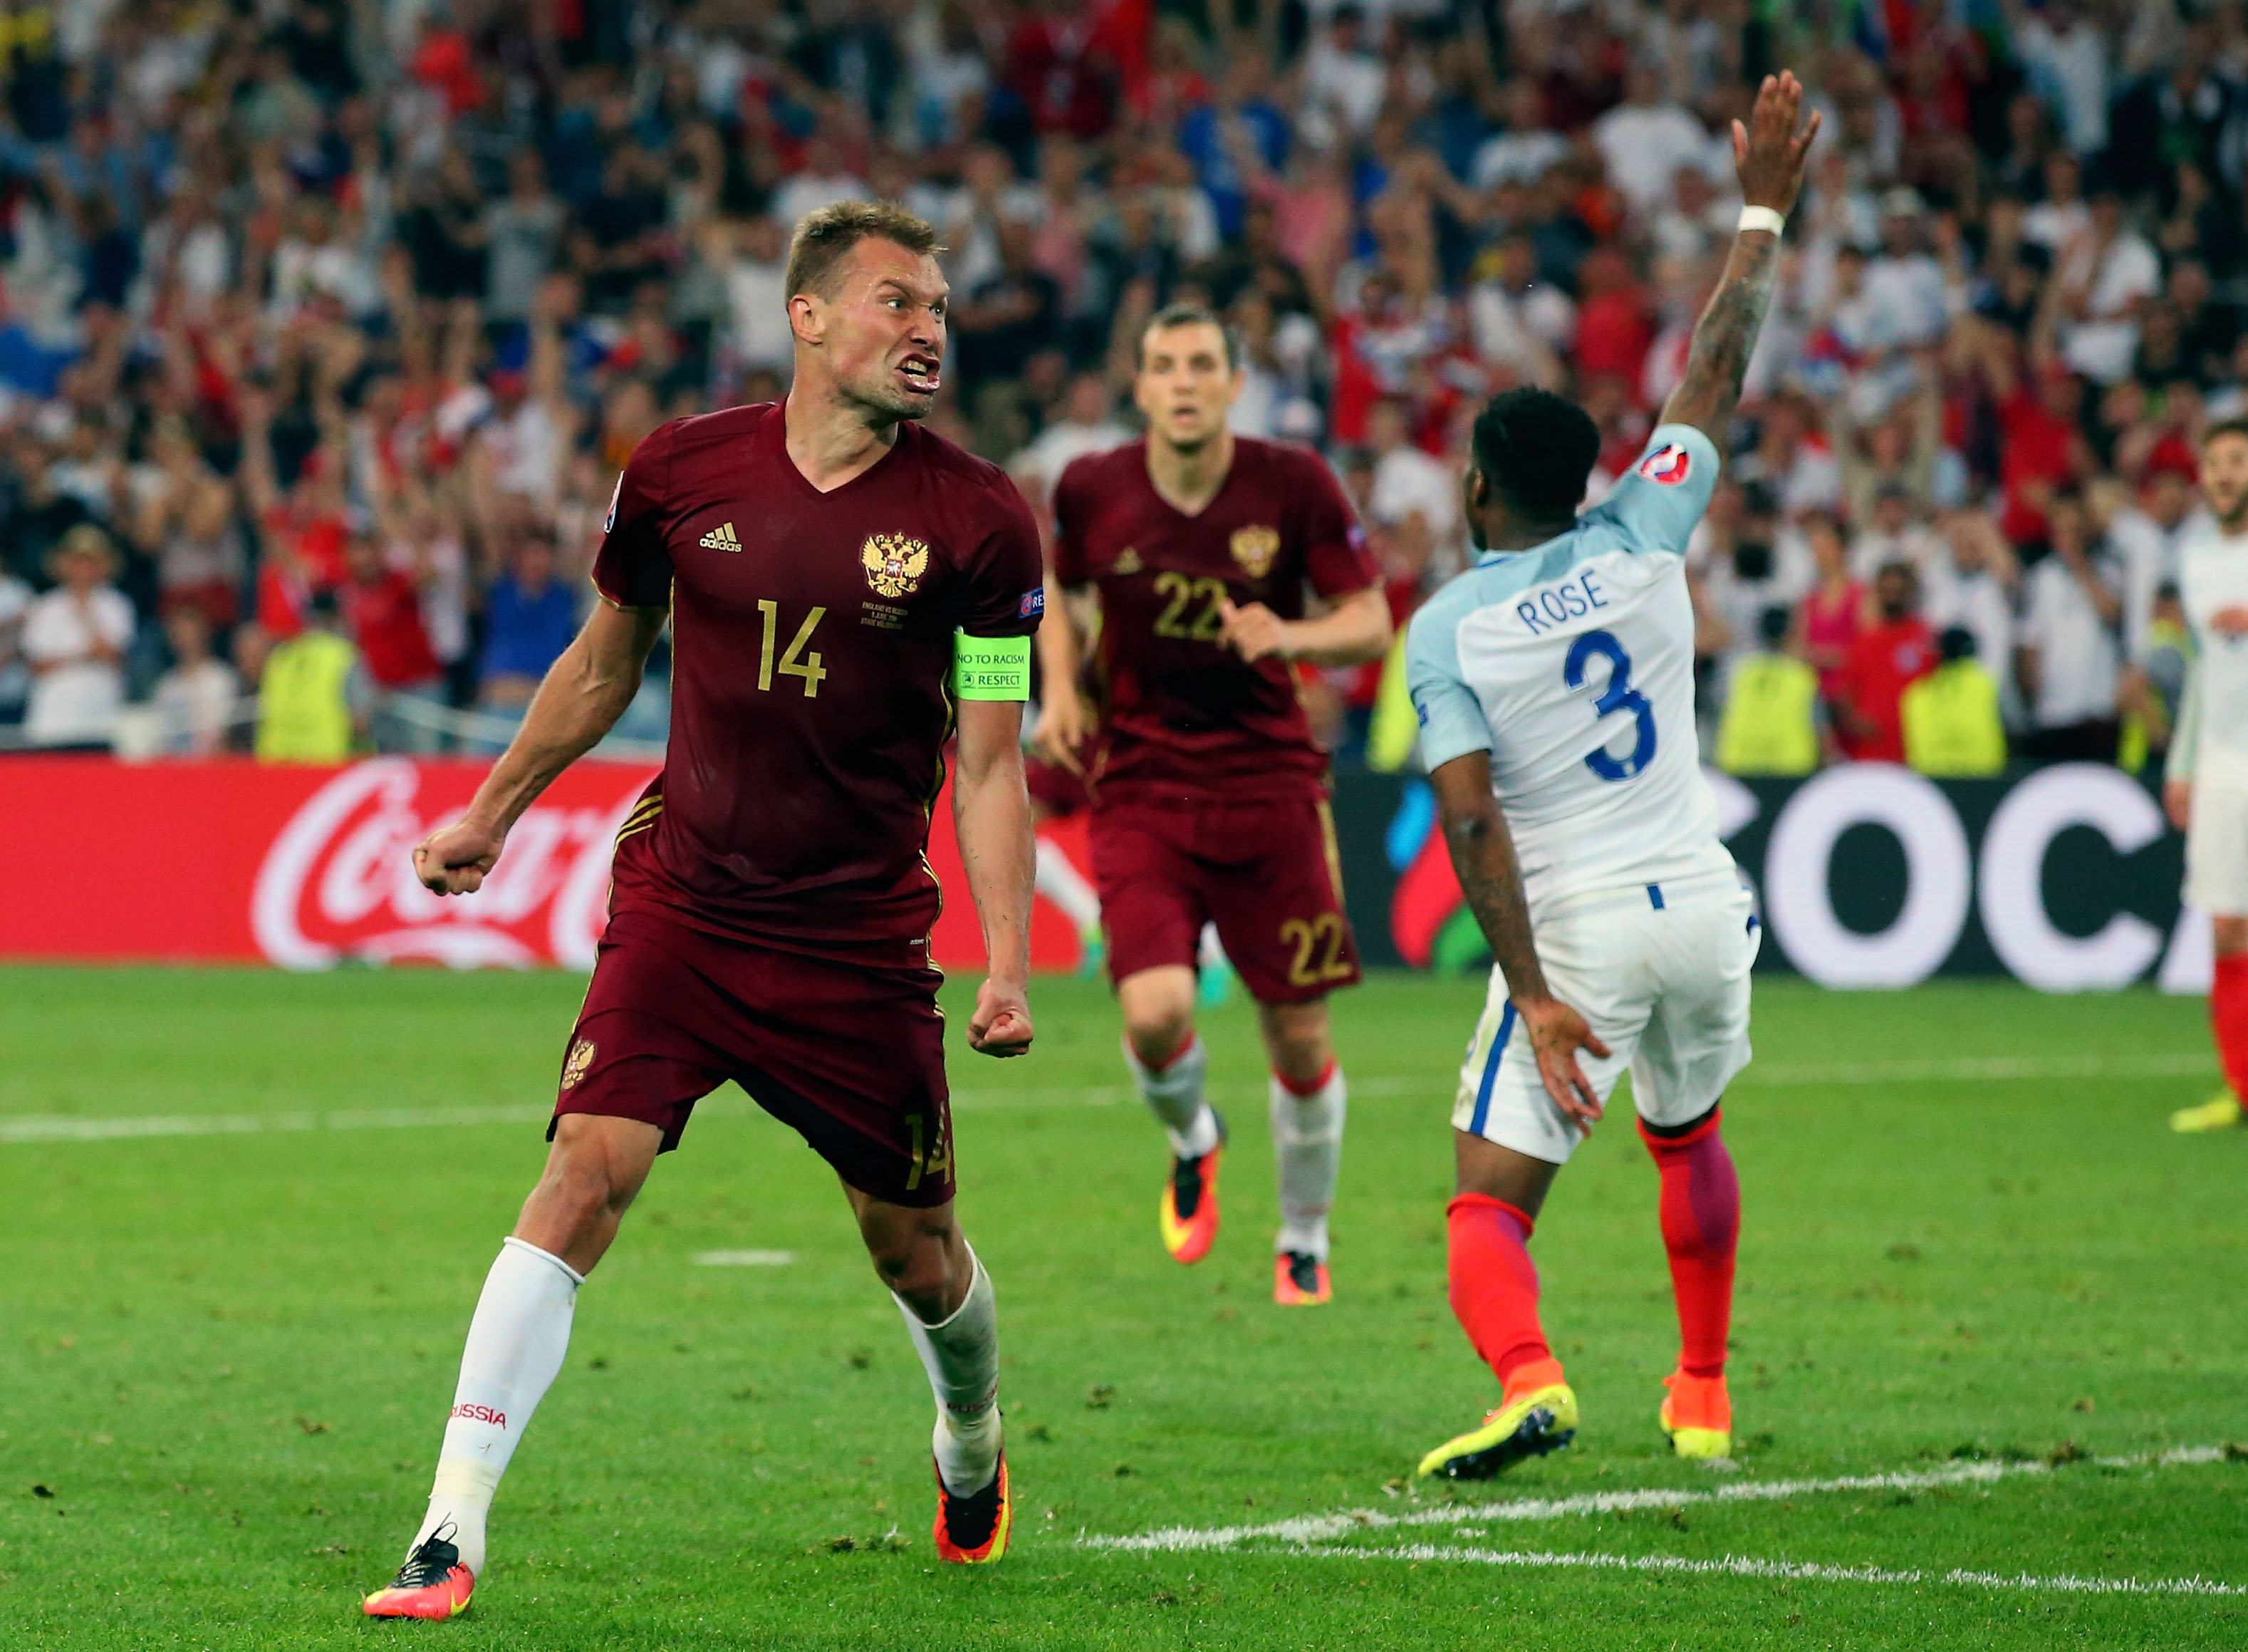 Russia vs. Slovakia, russia lineup, russia xi, starting xi, start time, tv channel, today, when, lineups, slovakia lineup, Russia vs. Slovakia partido, Russia vs. Slovakia horario